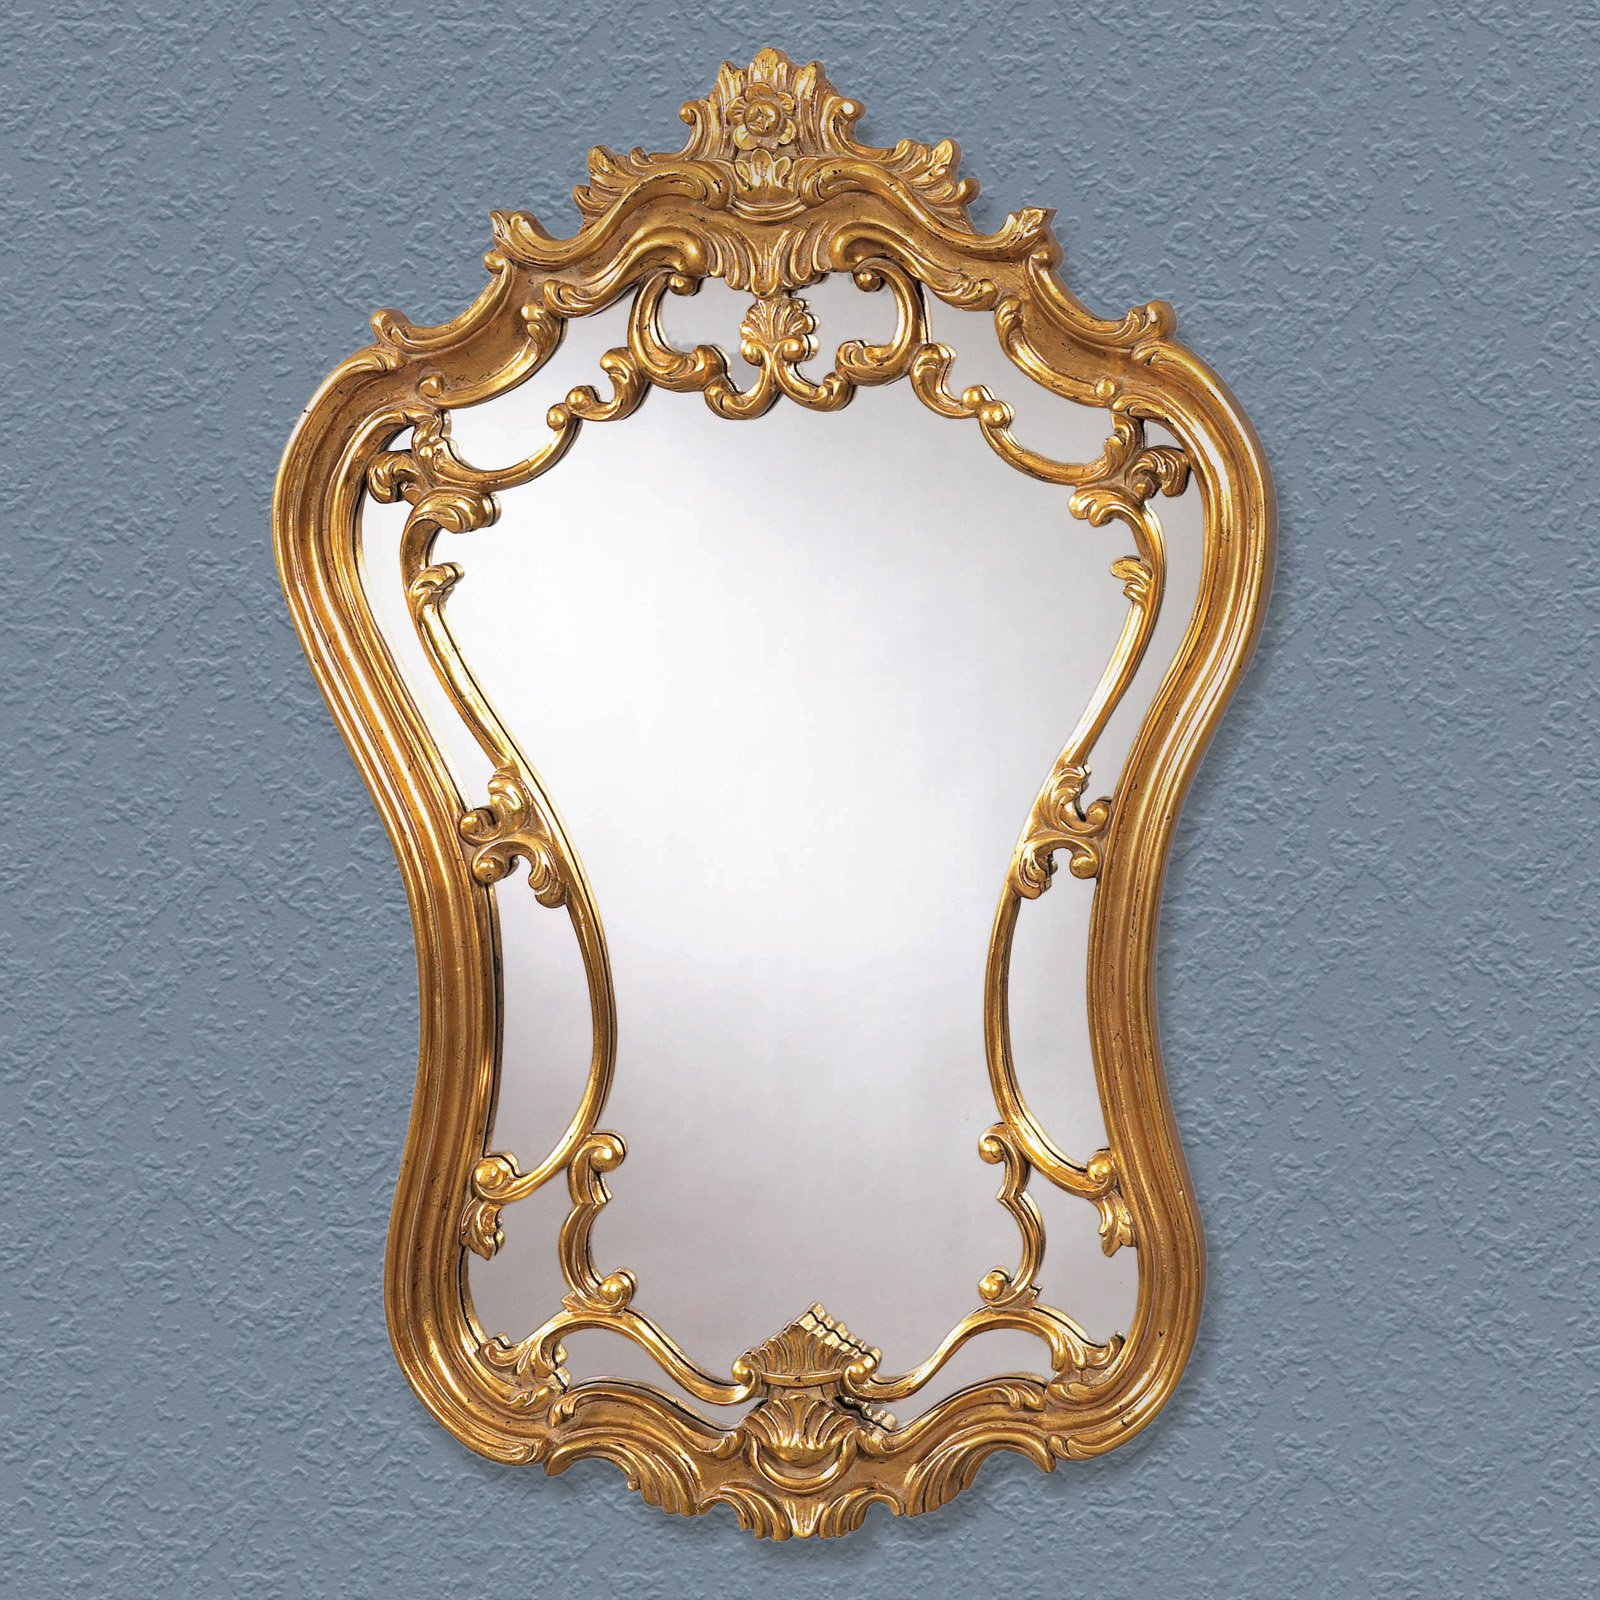 Gold Arch Wall Mirrors Inside Most Recently Released Antique Gold Ornate Arched Wall Mirror – 24w X 35h In (View 19 of 20)